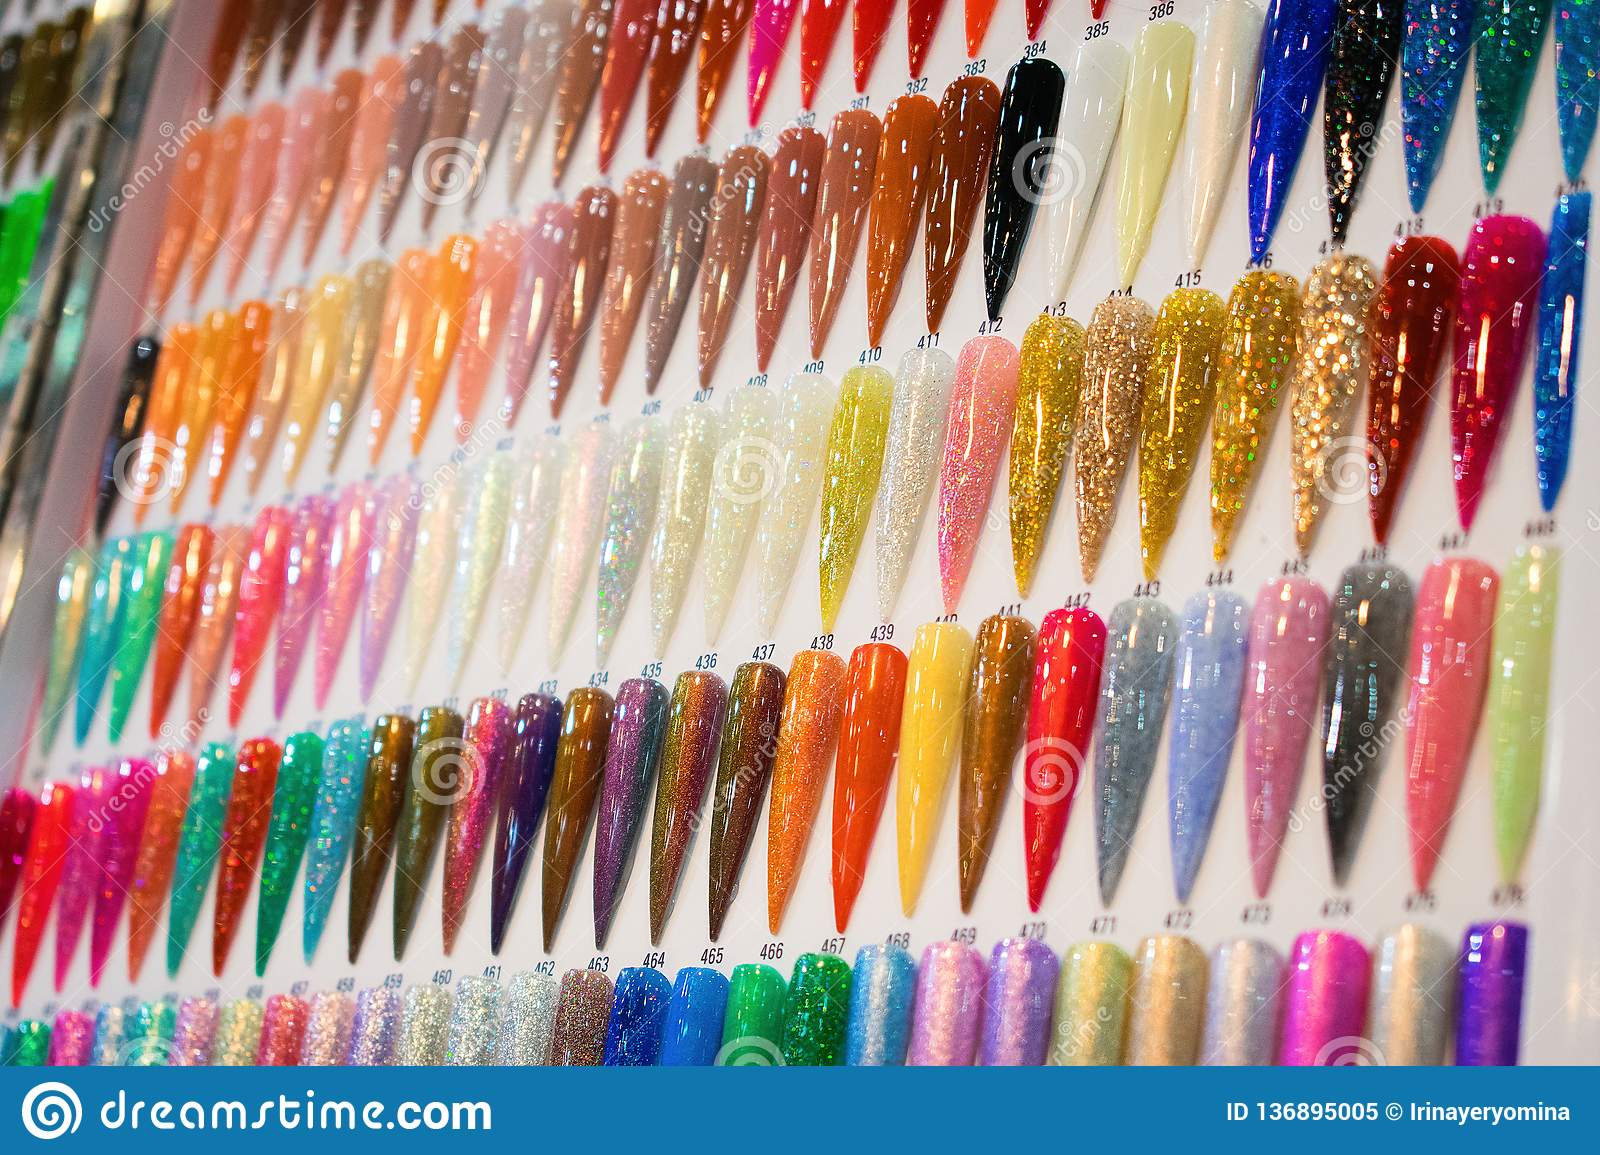 Nail Polish Color Charts. Nail polish swatches in different color. Colorful nail lacquer in tips. Shiny gel lacquer